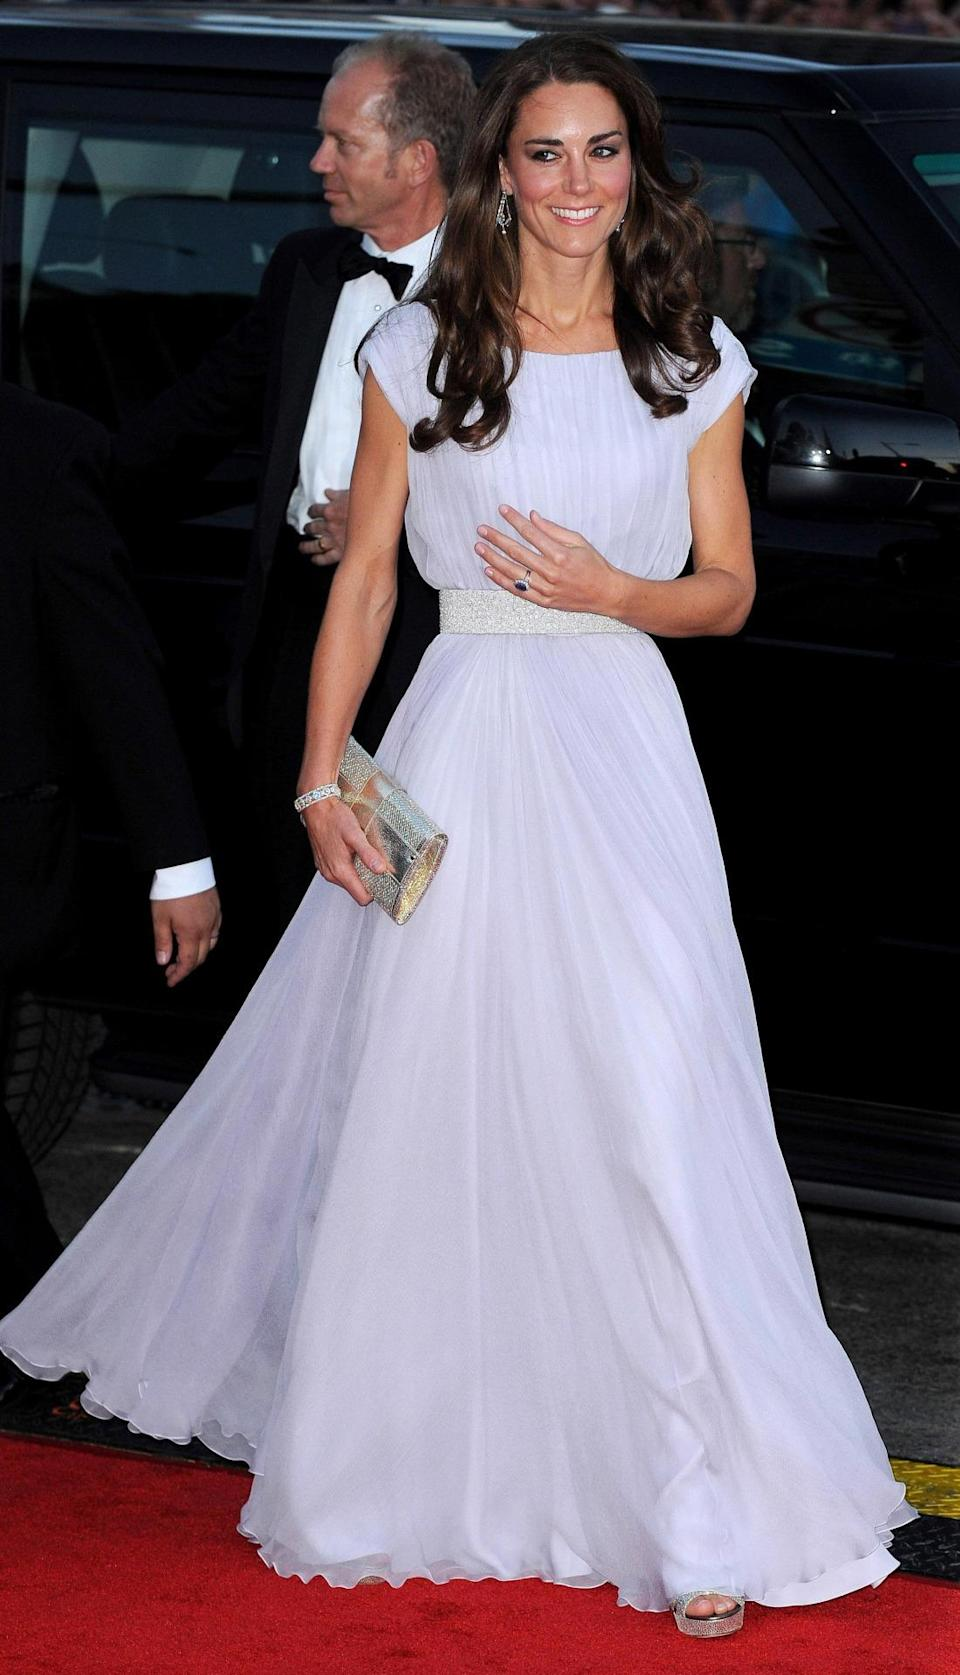 <p>Kate wowed the crowd at a BAFTA celebration in LA in a lilac Alexander McQueen gown. She paired the look with silver Jimmy Choo sandals and a matching clutch. </p><p><i>[Photo: PA]</i></p>